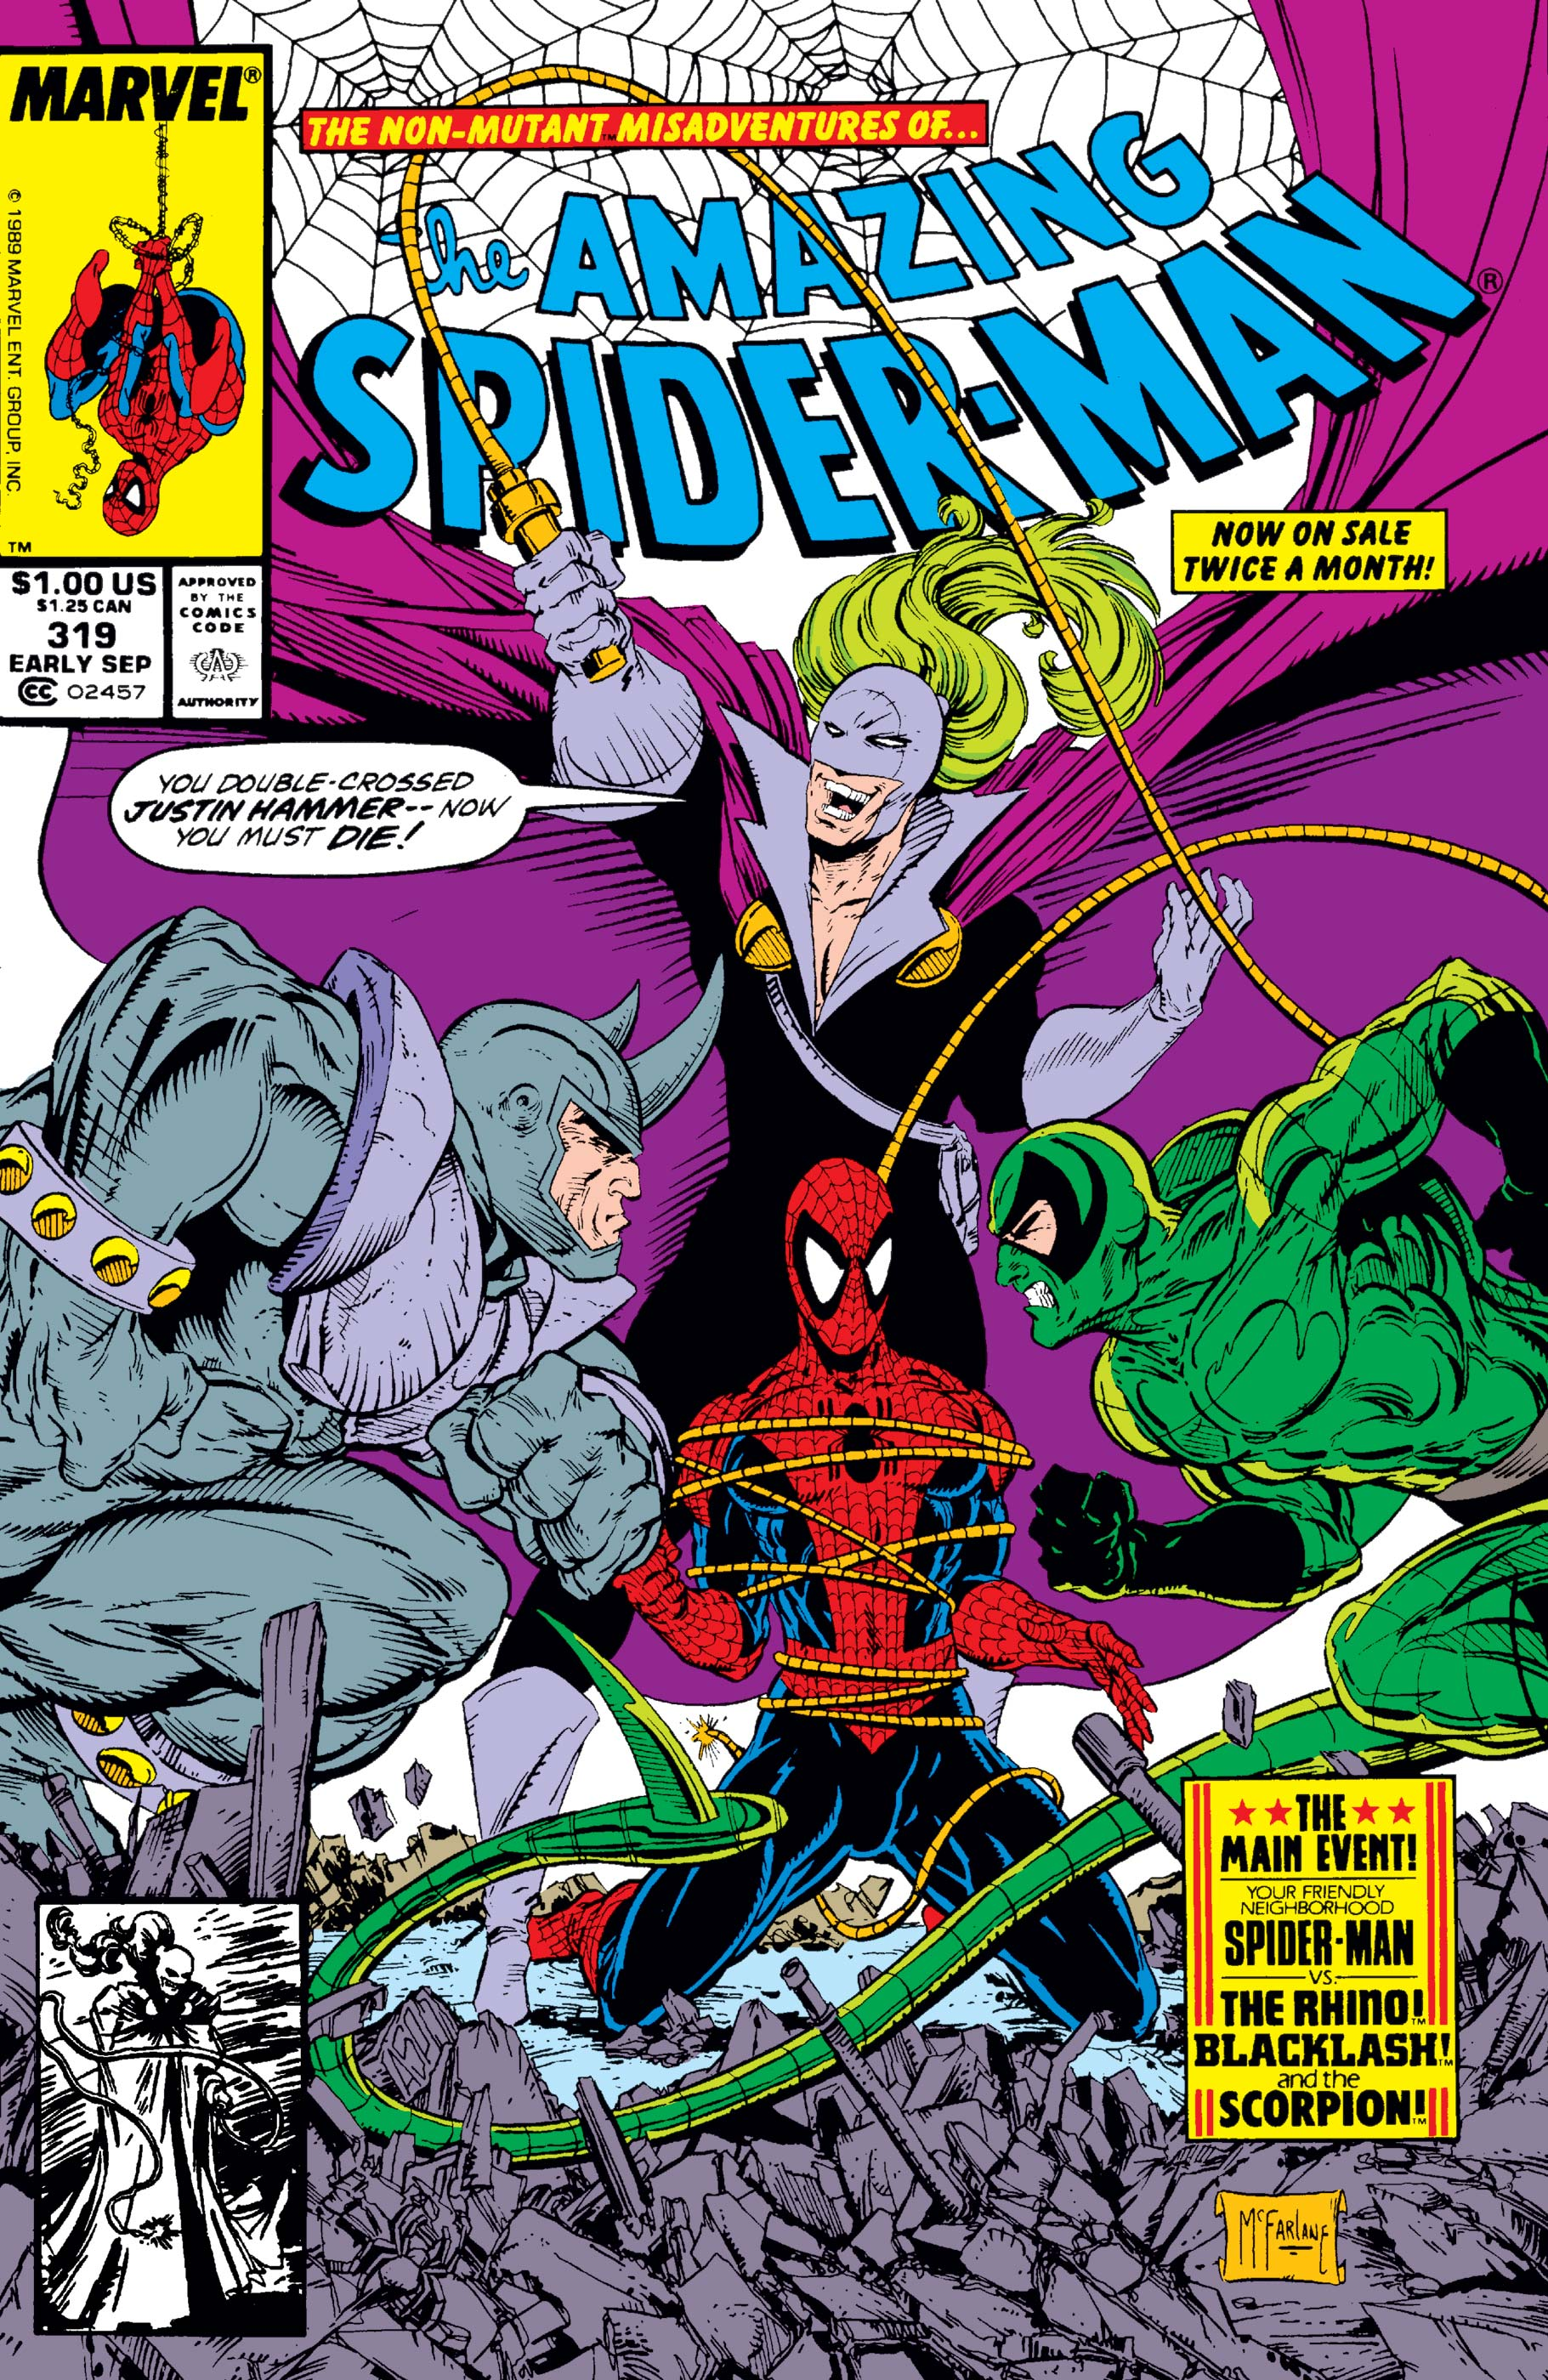 The Amazing Spider-Man (1963) #319